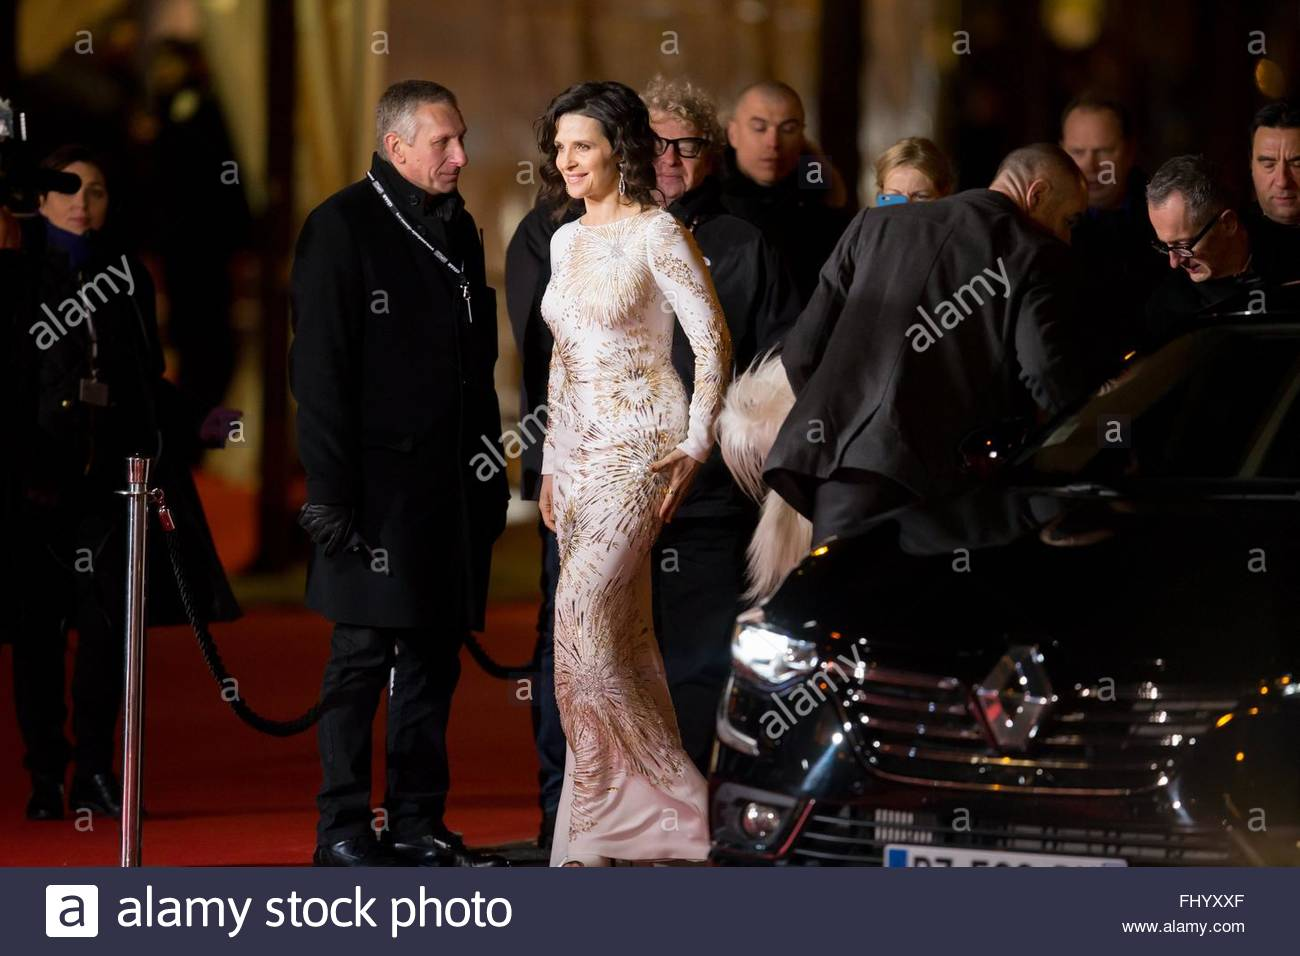 Paris, France. February 26th, 2016. FRANCE, Paris: French actress Juliette Binoche walks on the red carpet of the Stock Photo